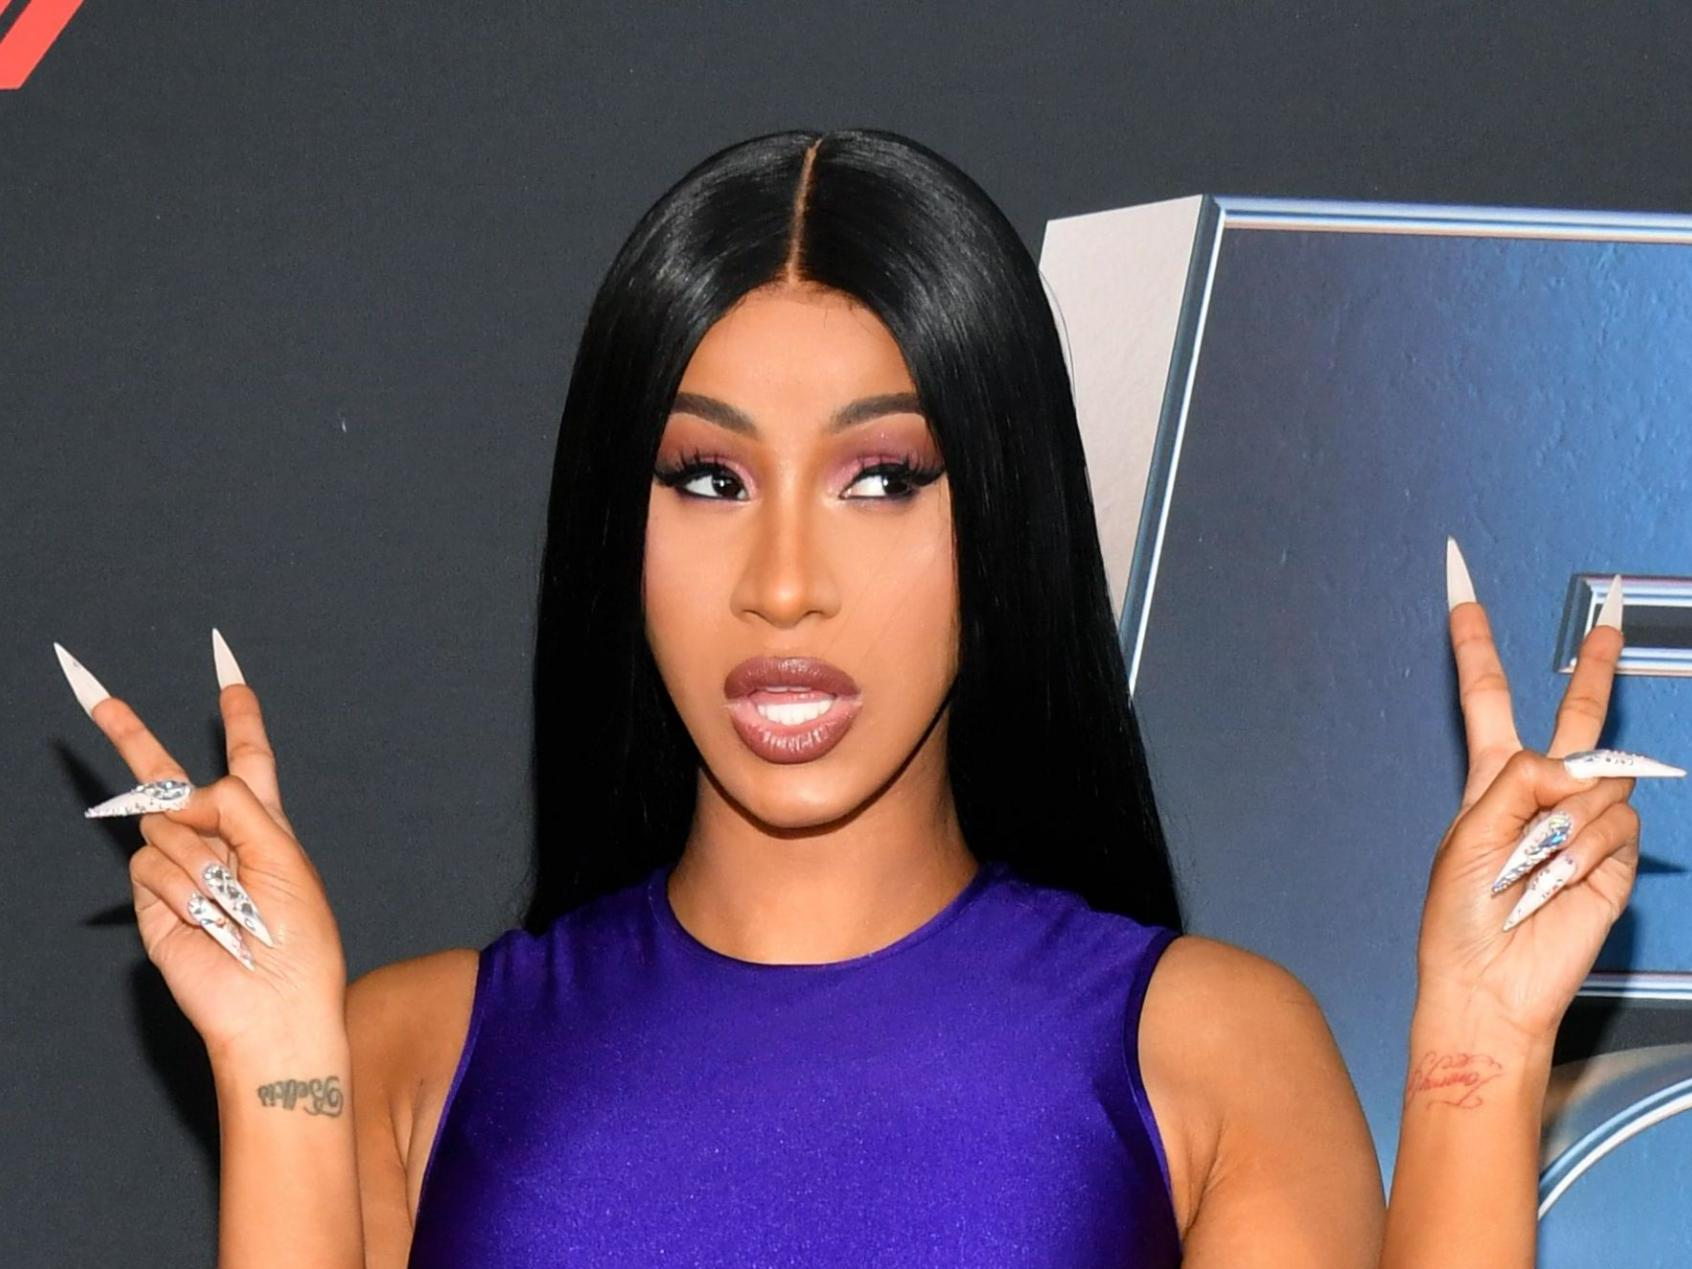 Cardi B - latest news, breaking stories and comment - The Independent